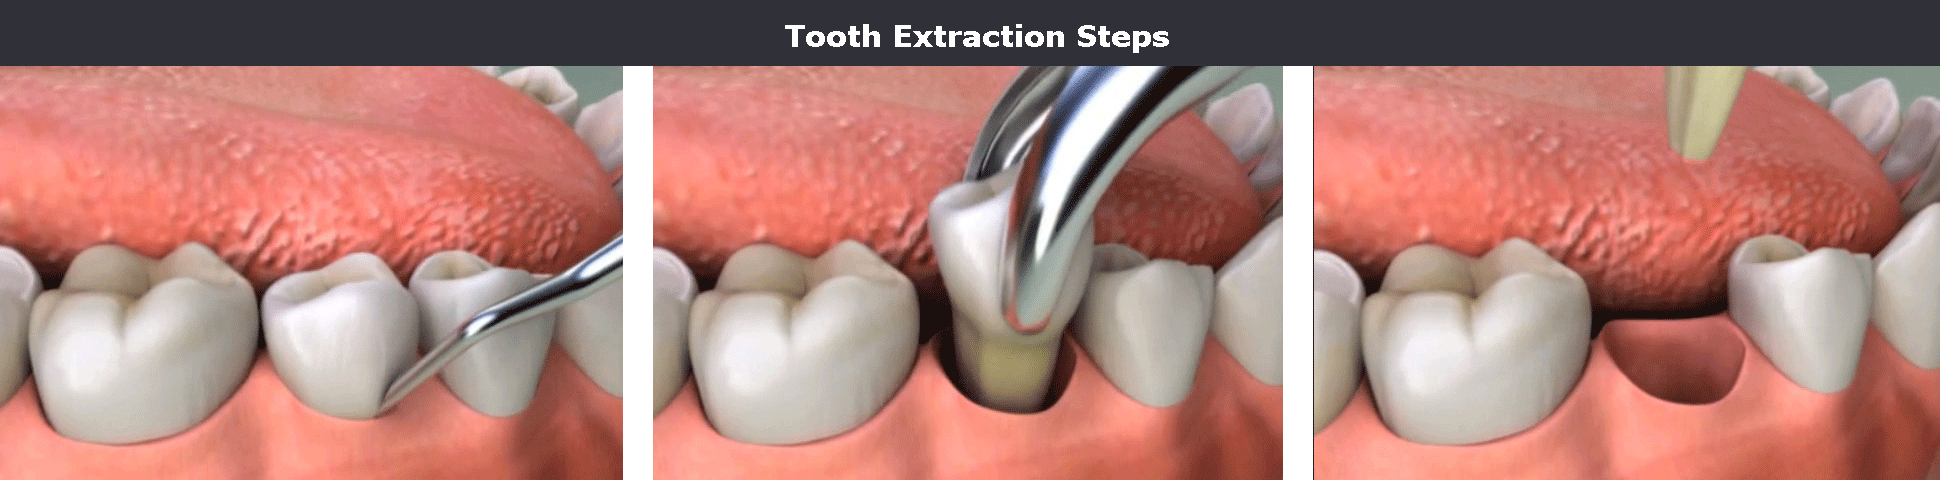 Tooth extraction steps